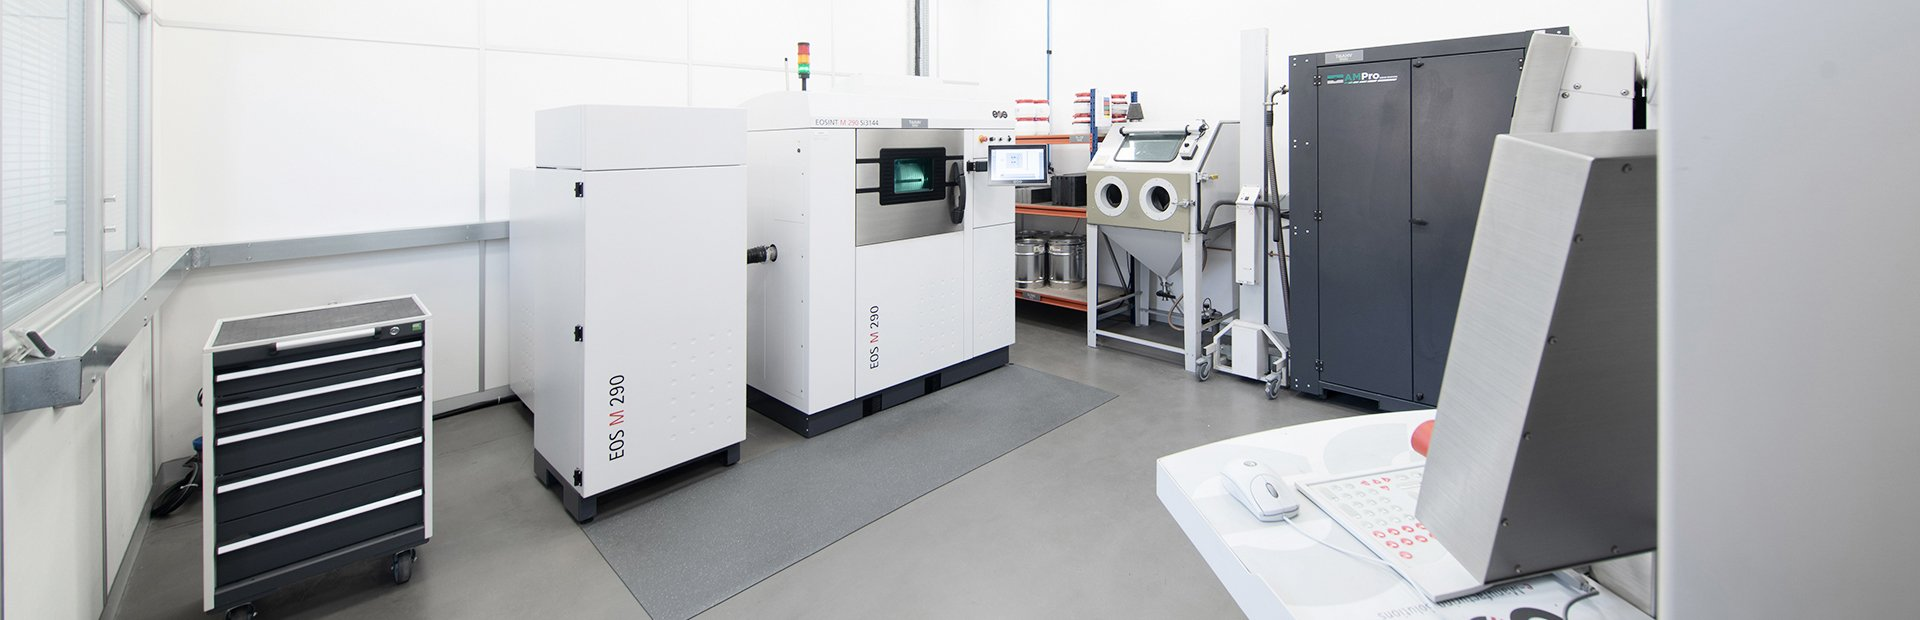 Additive Manufacturing Facility